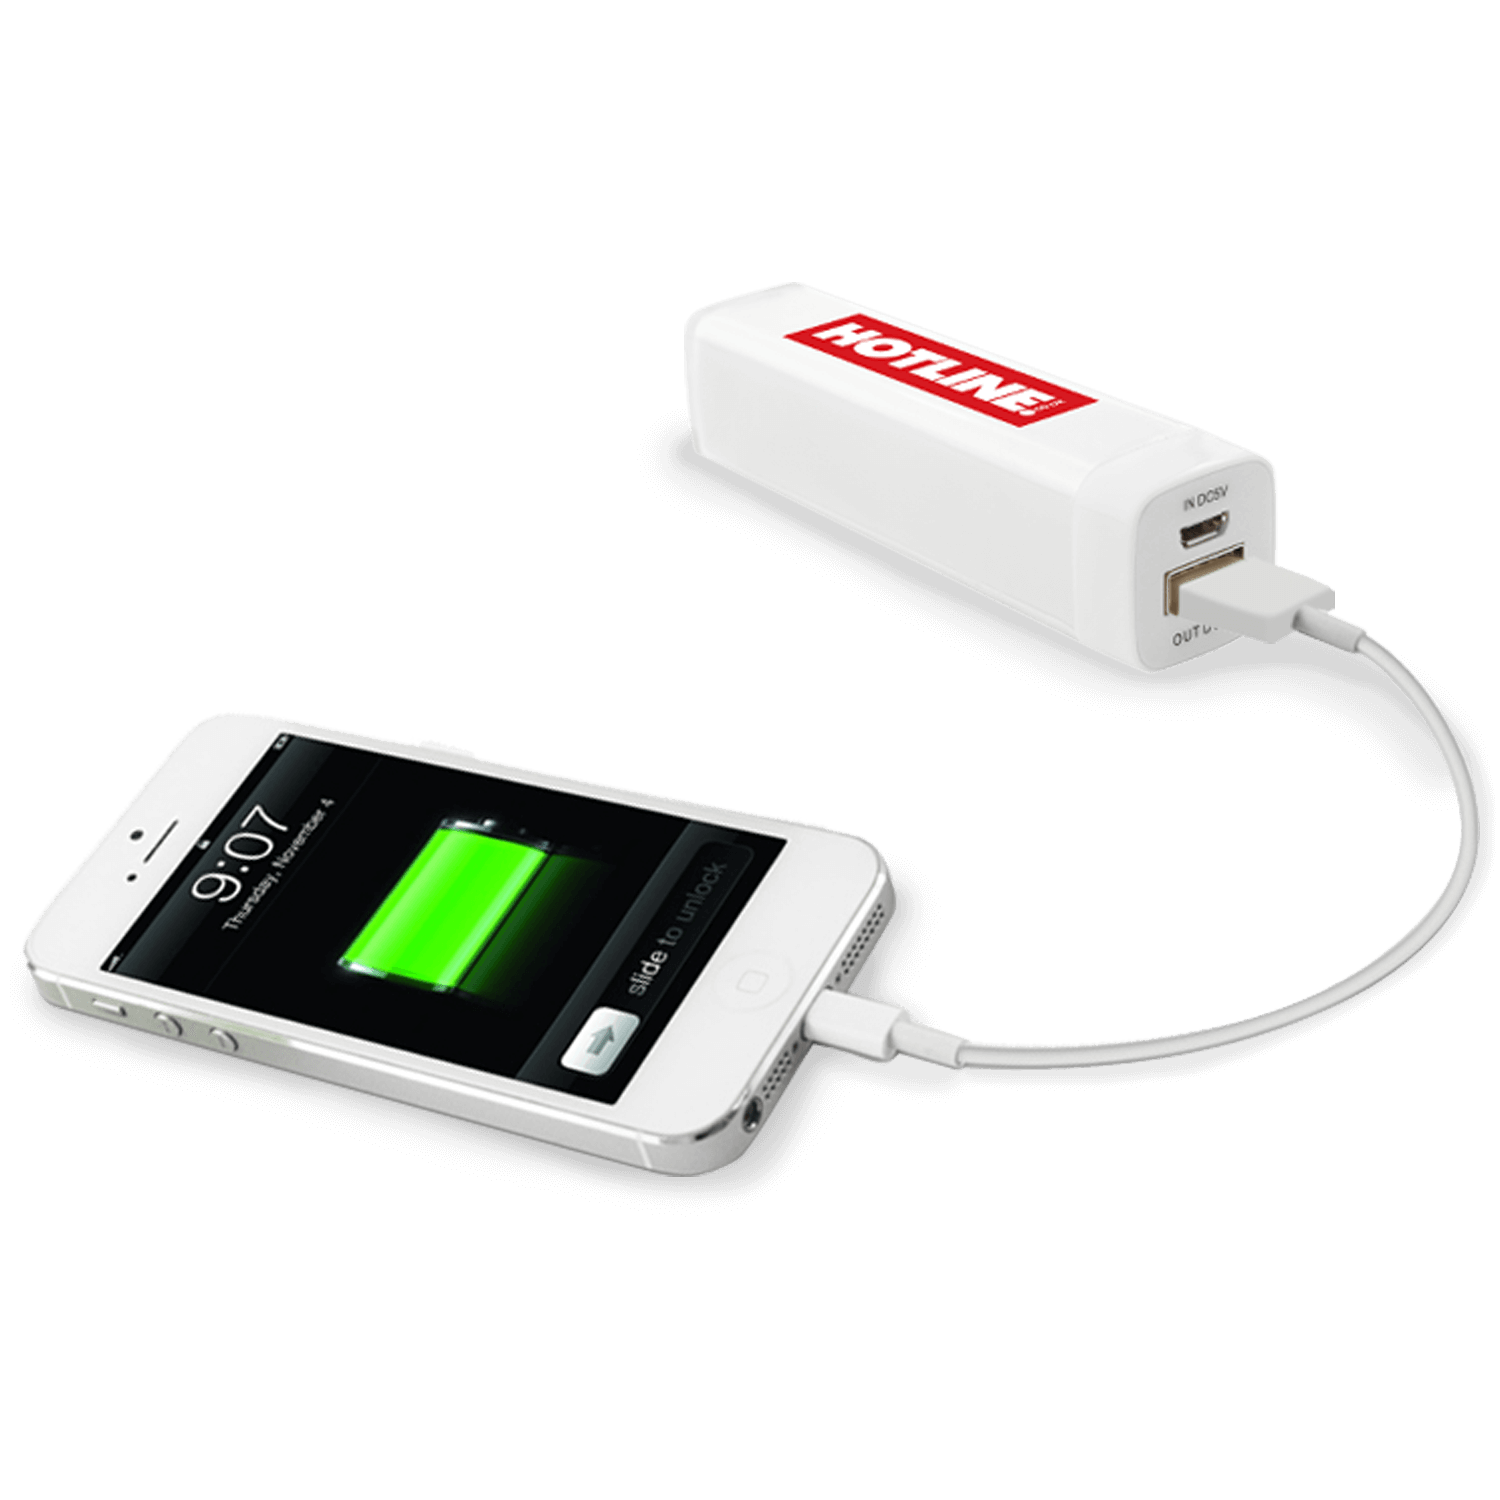 Printed Power Bank Charger - 2200mAh